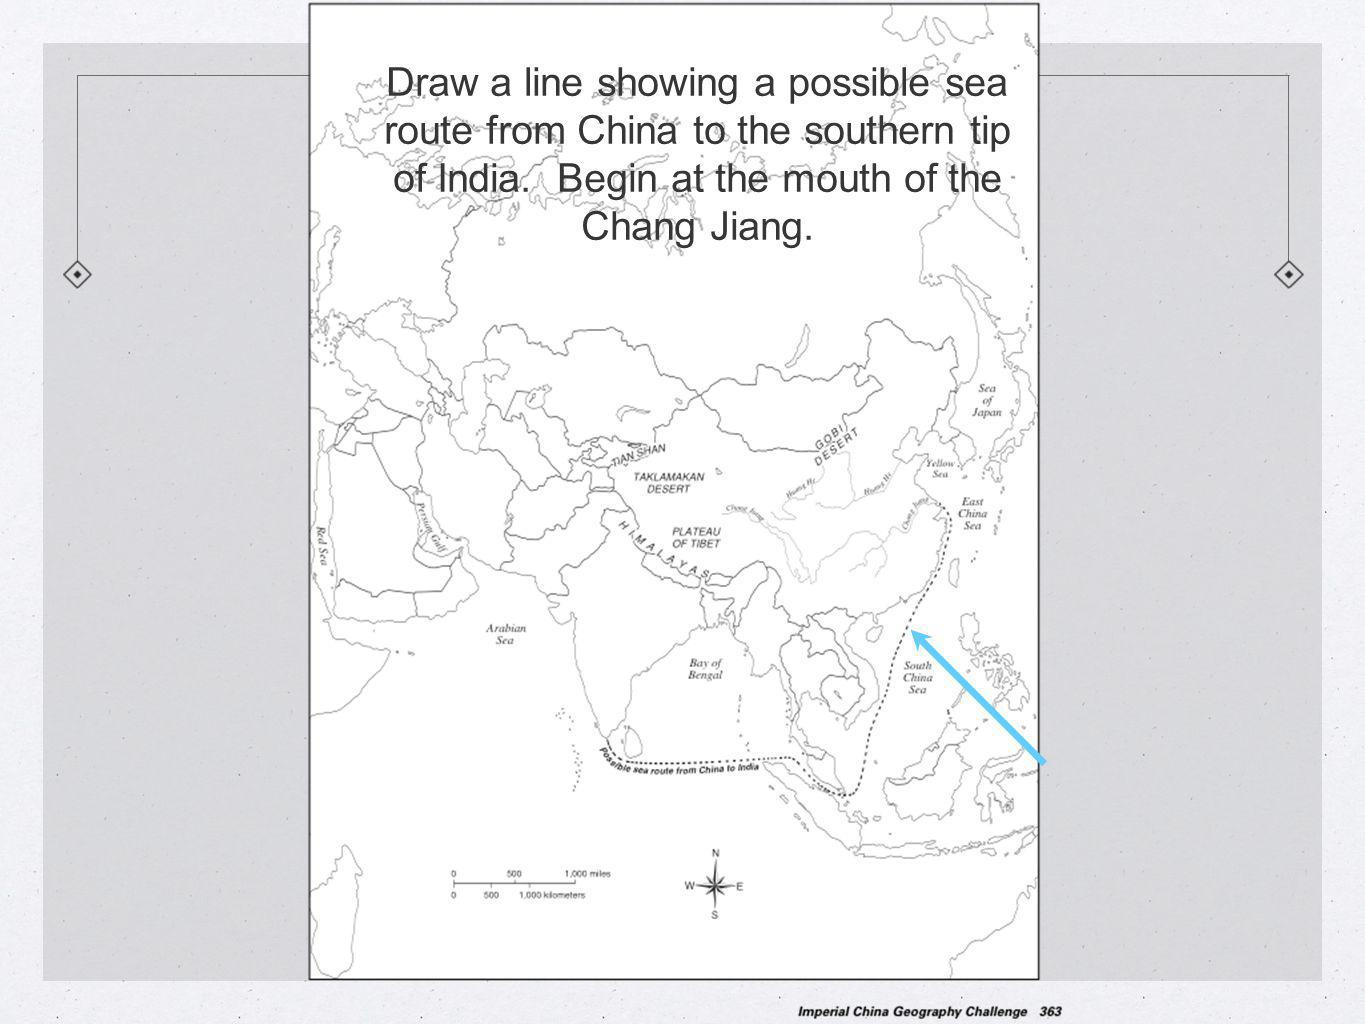 Draw a line showing a possible sea route from China to the southern tip of India.